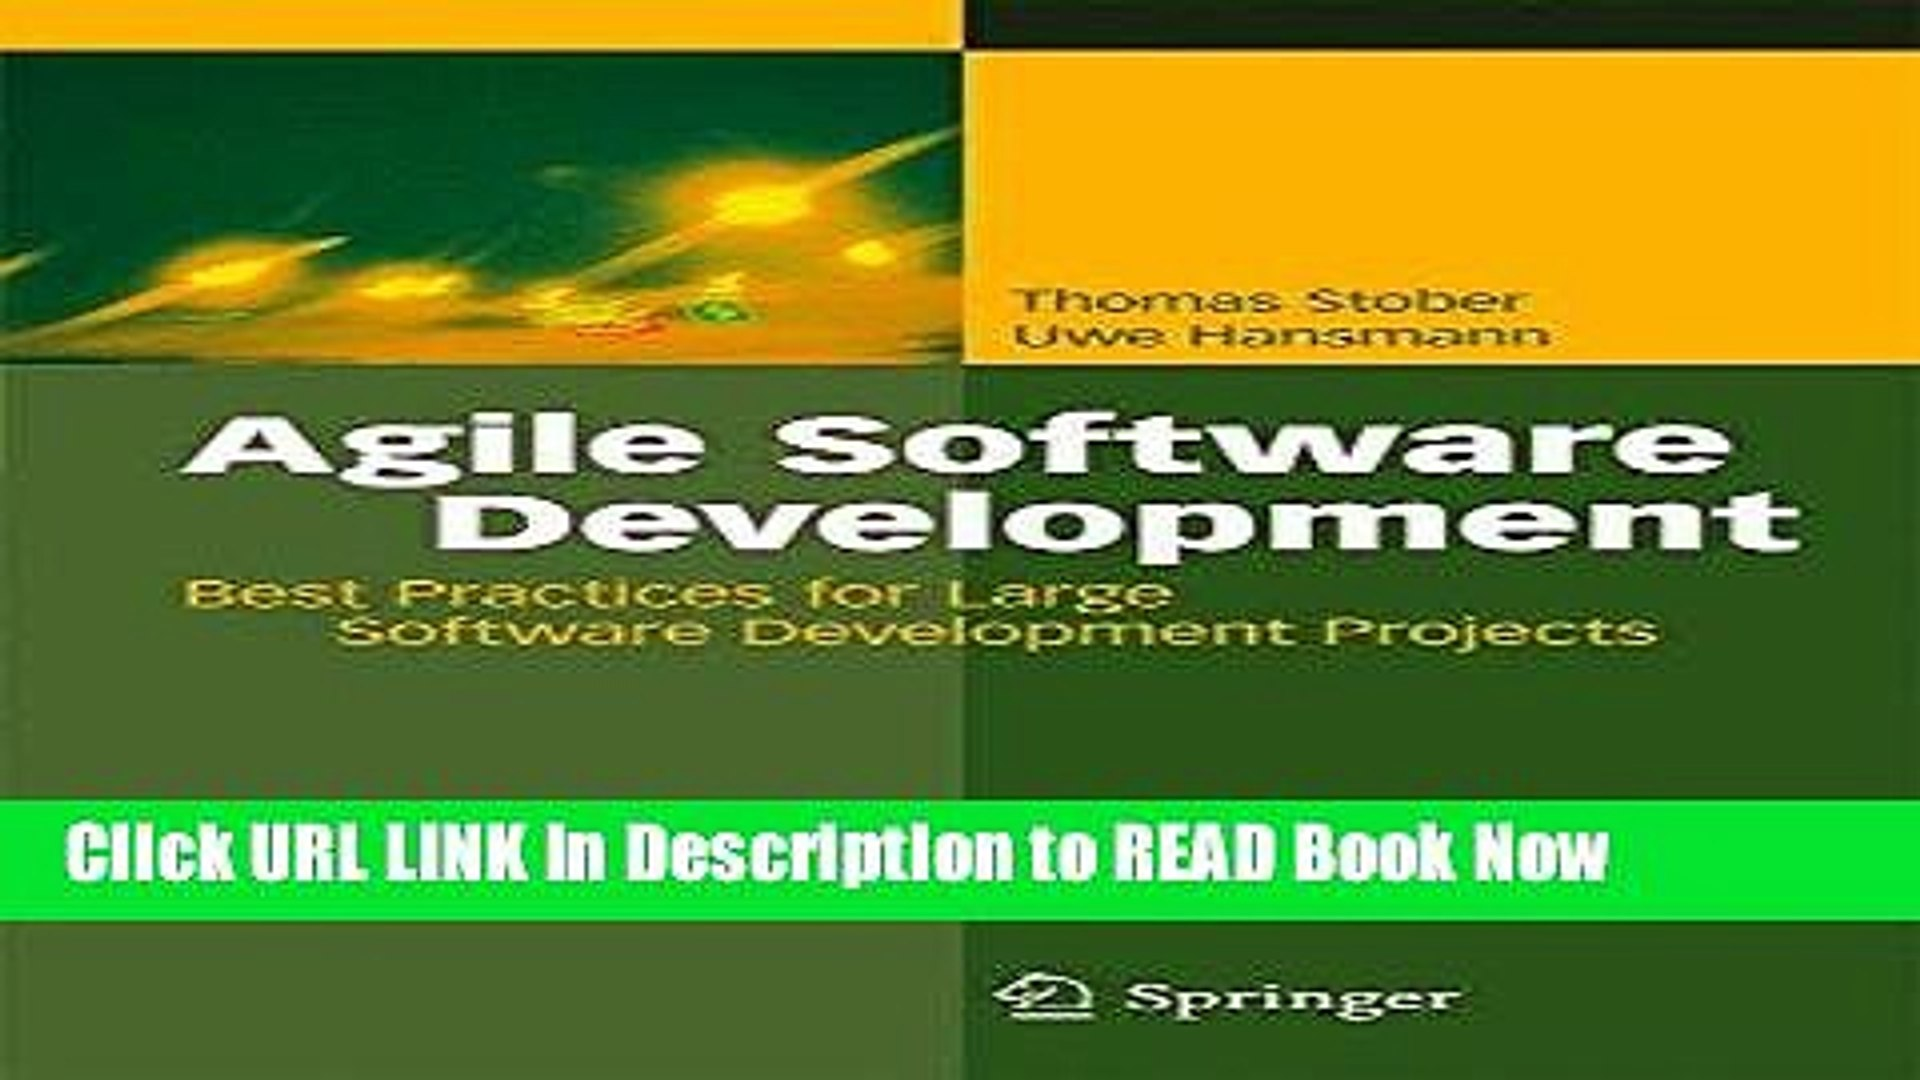 [Popular Books] Agile Software Development: Best Practices for Large Software Development